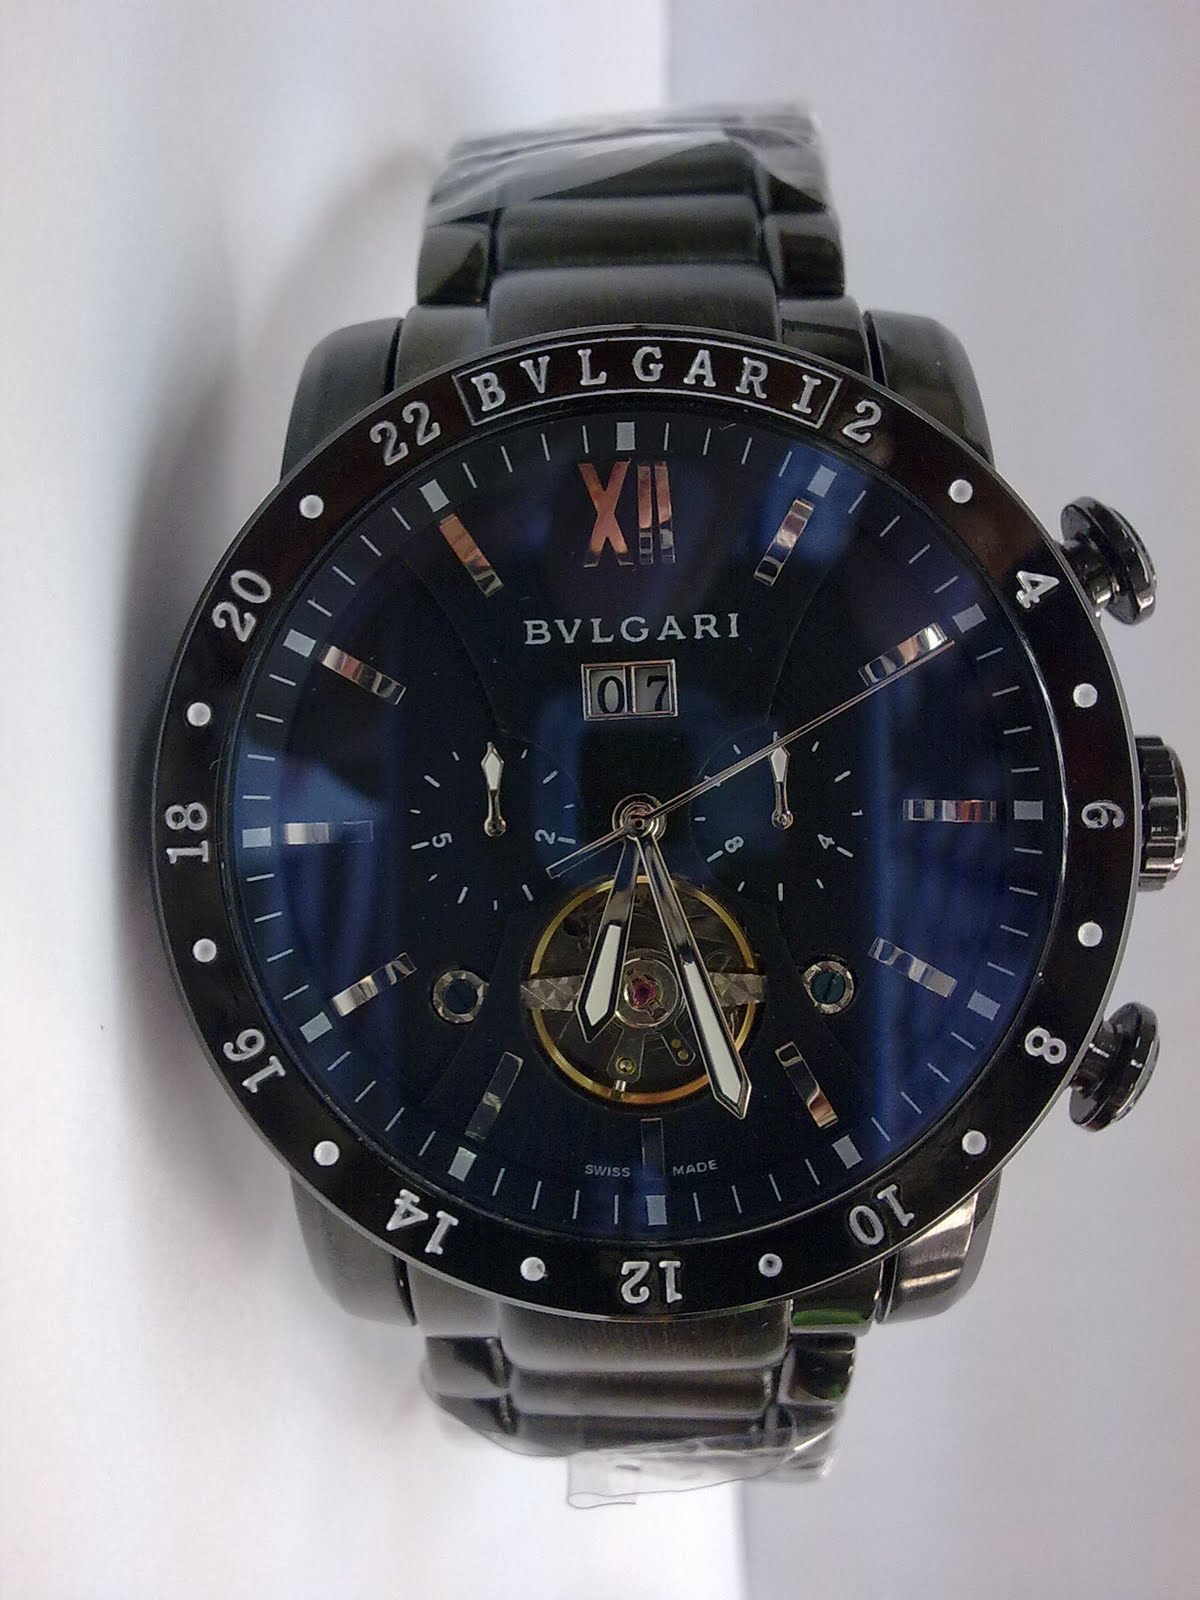 Imsal tag heuer bvlgari omega rolex chopard men 39 s watches in malaysia for Bvlgari watches